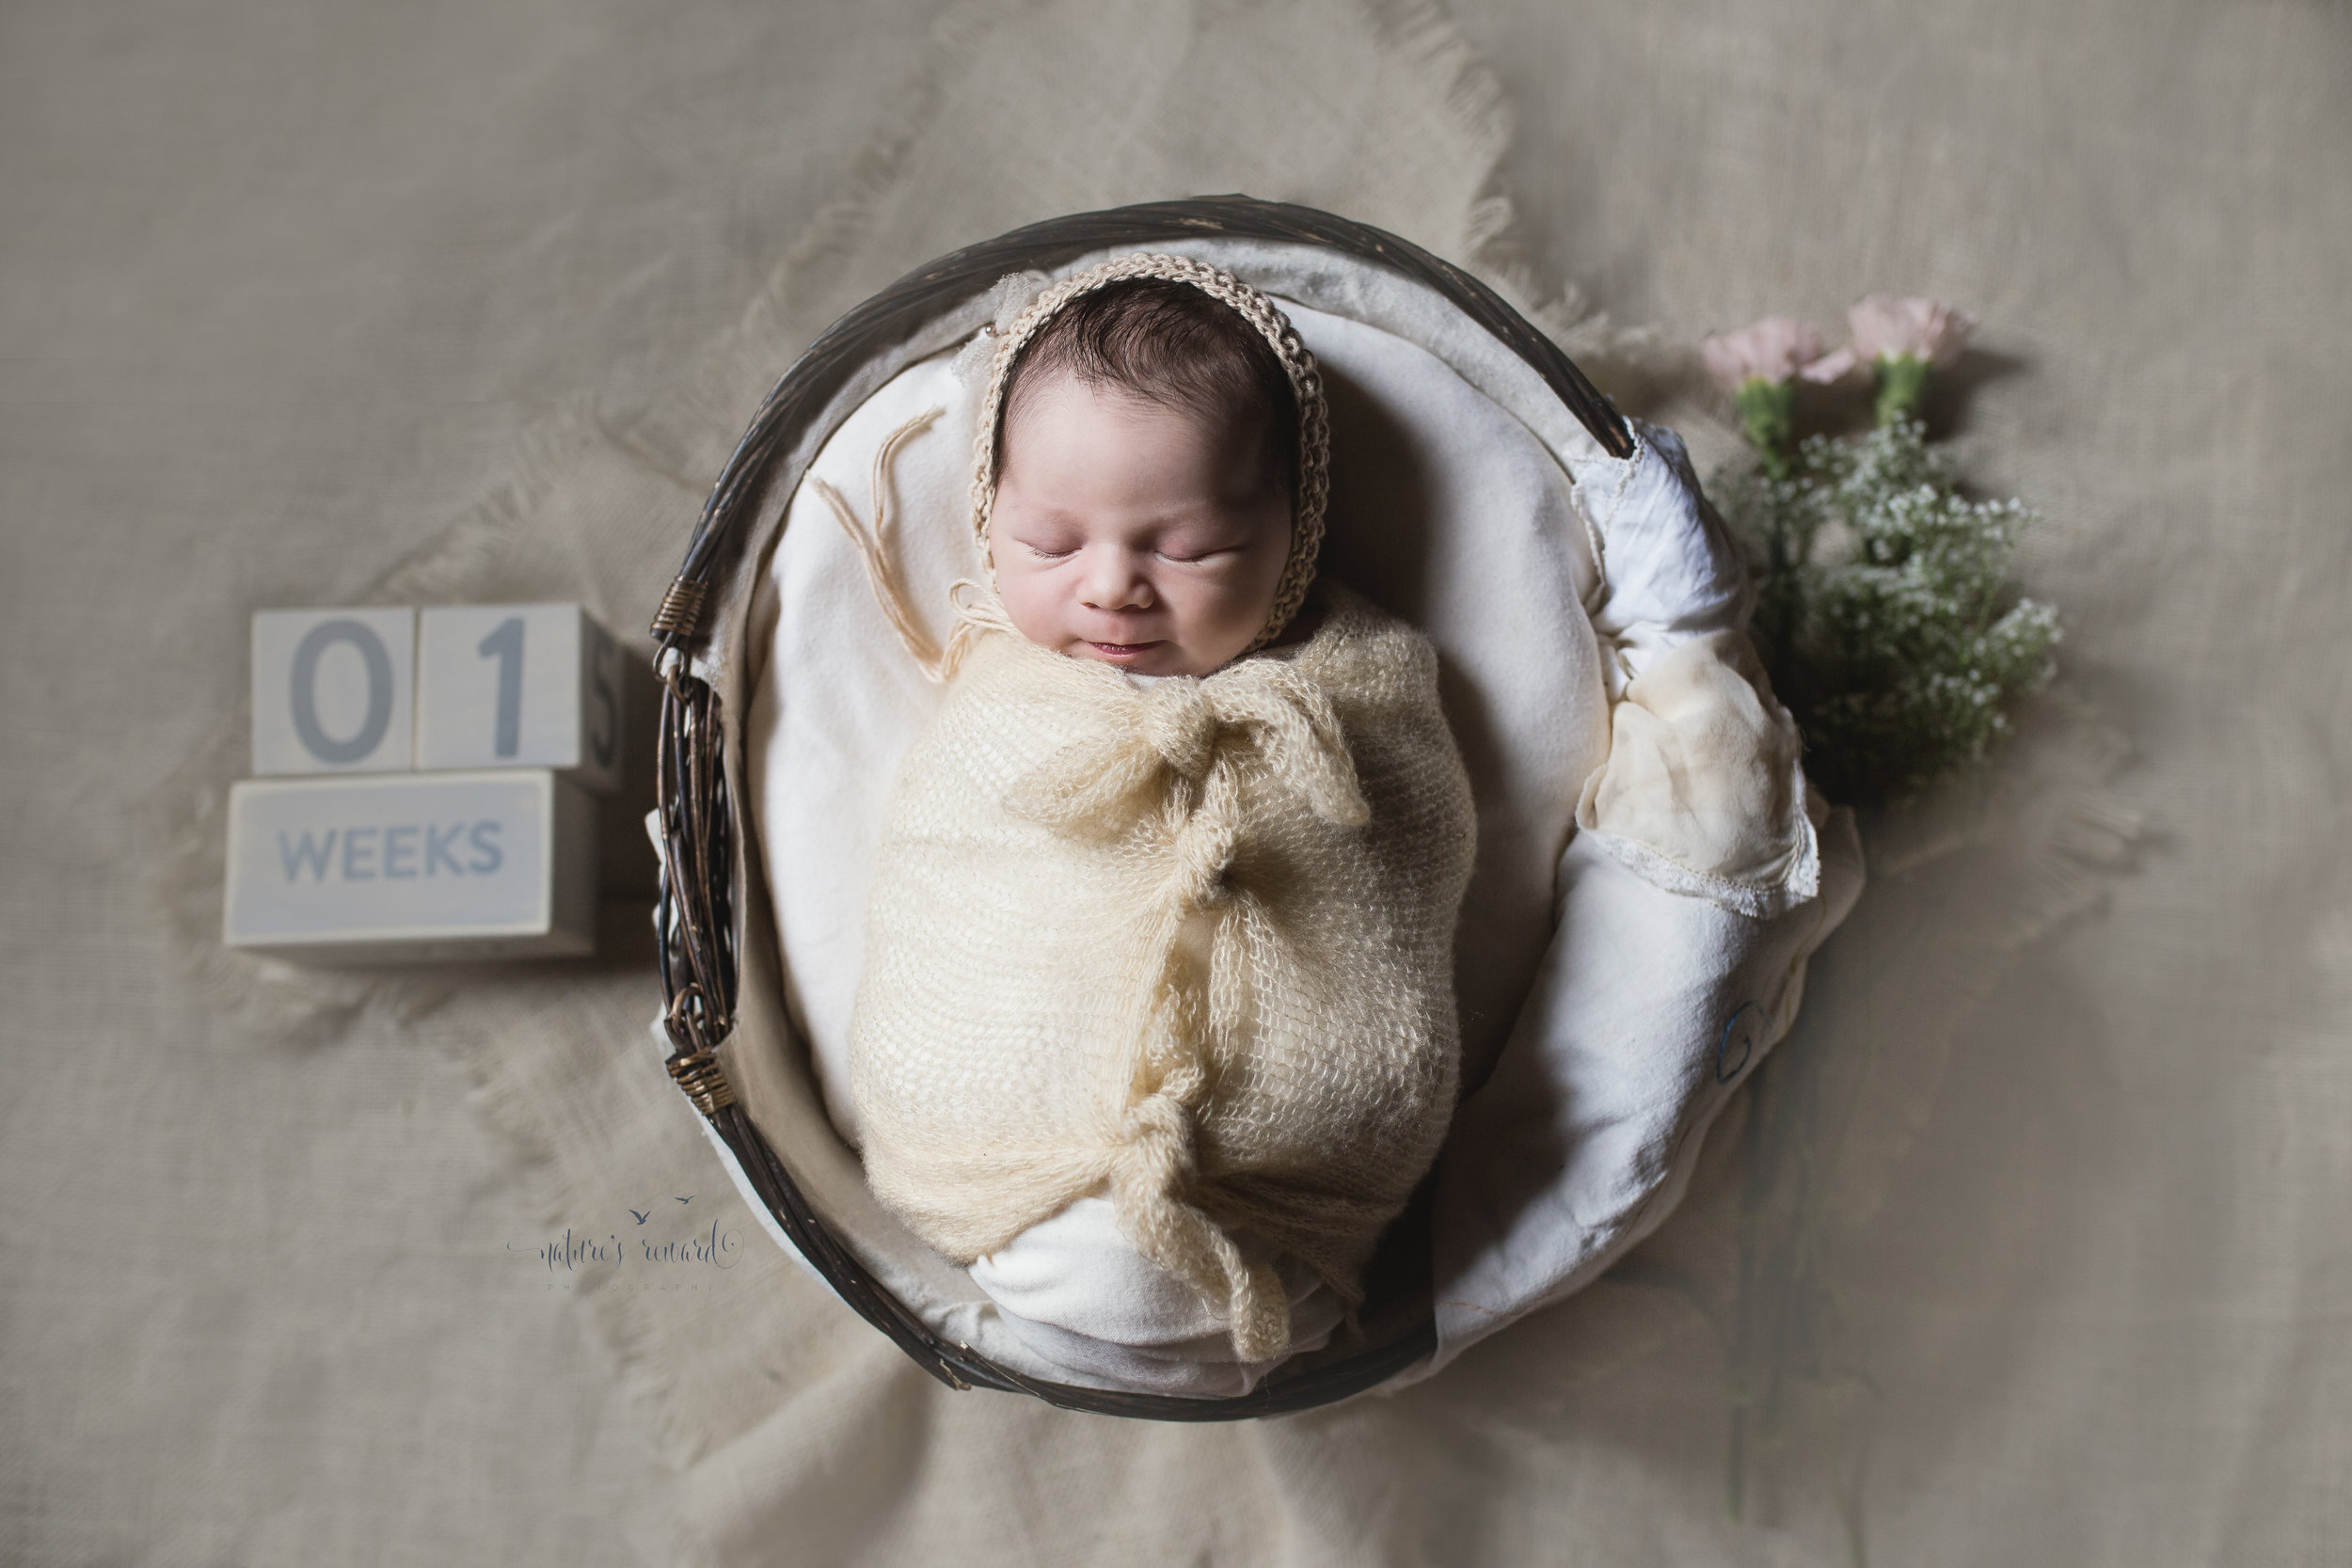 Images for the living room were next!  Beautiful baby girl in tan!  The soft pink flowers and lovely wooden blocks compliment the image.